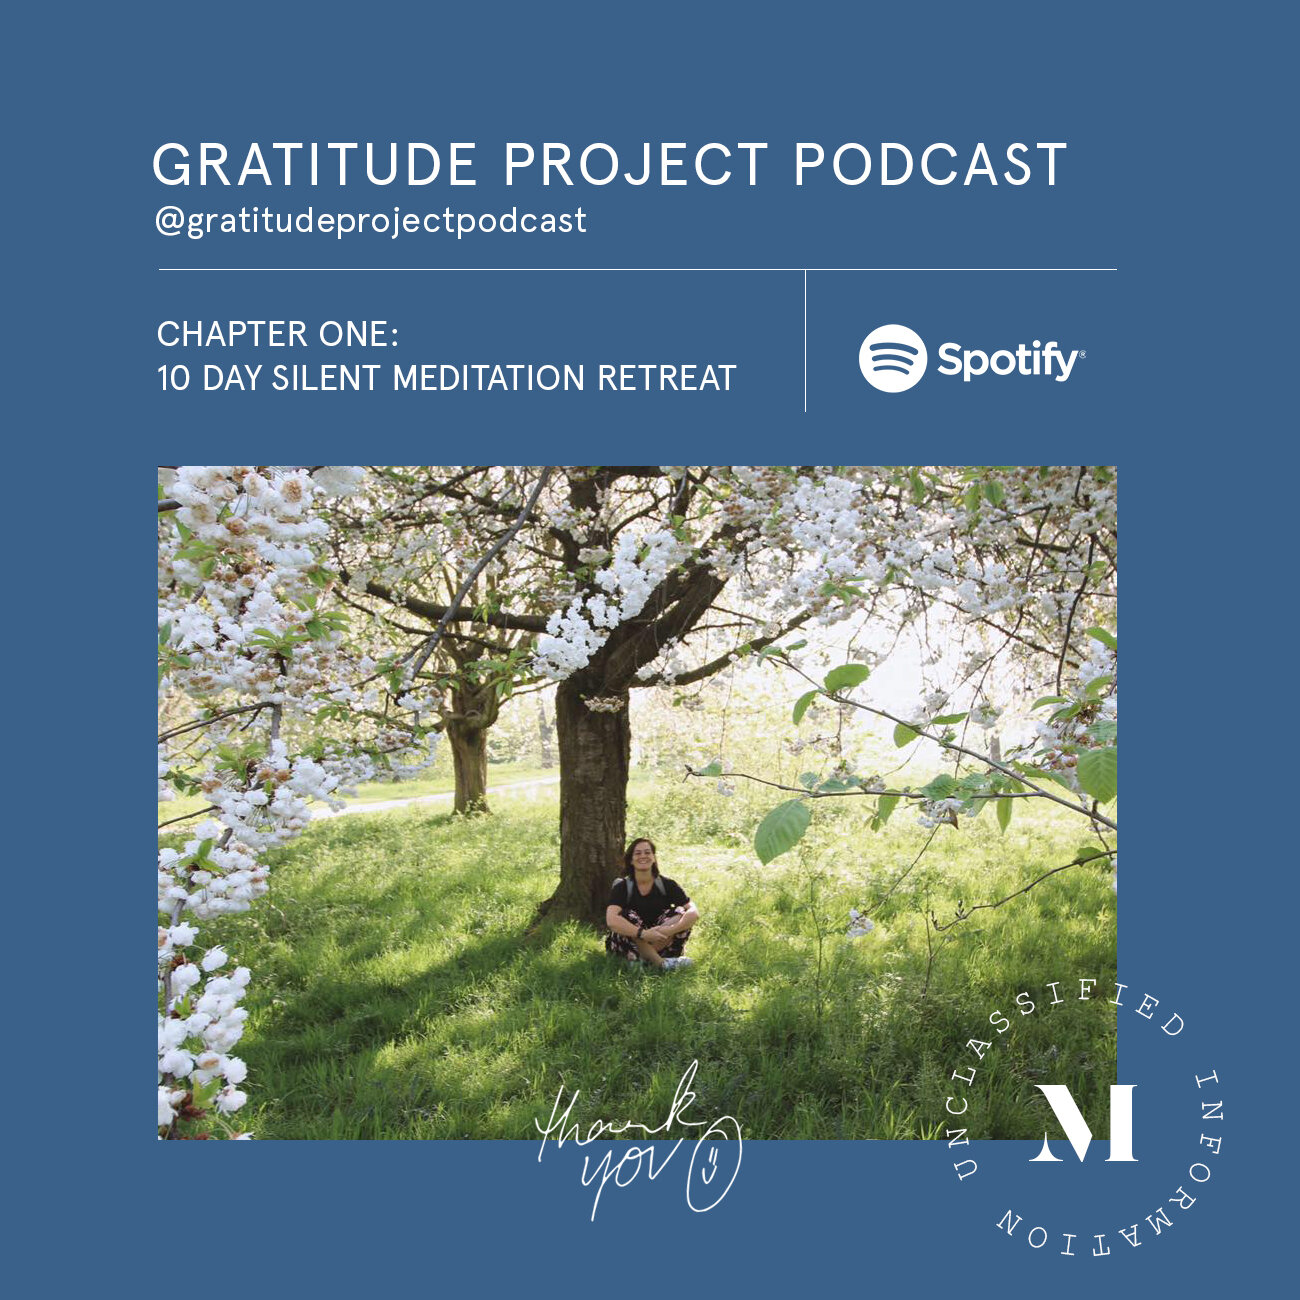 the-gratitude-project-podcast